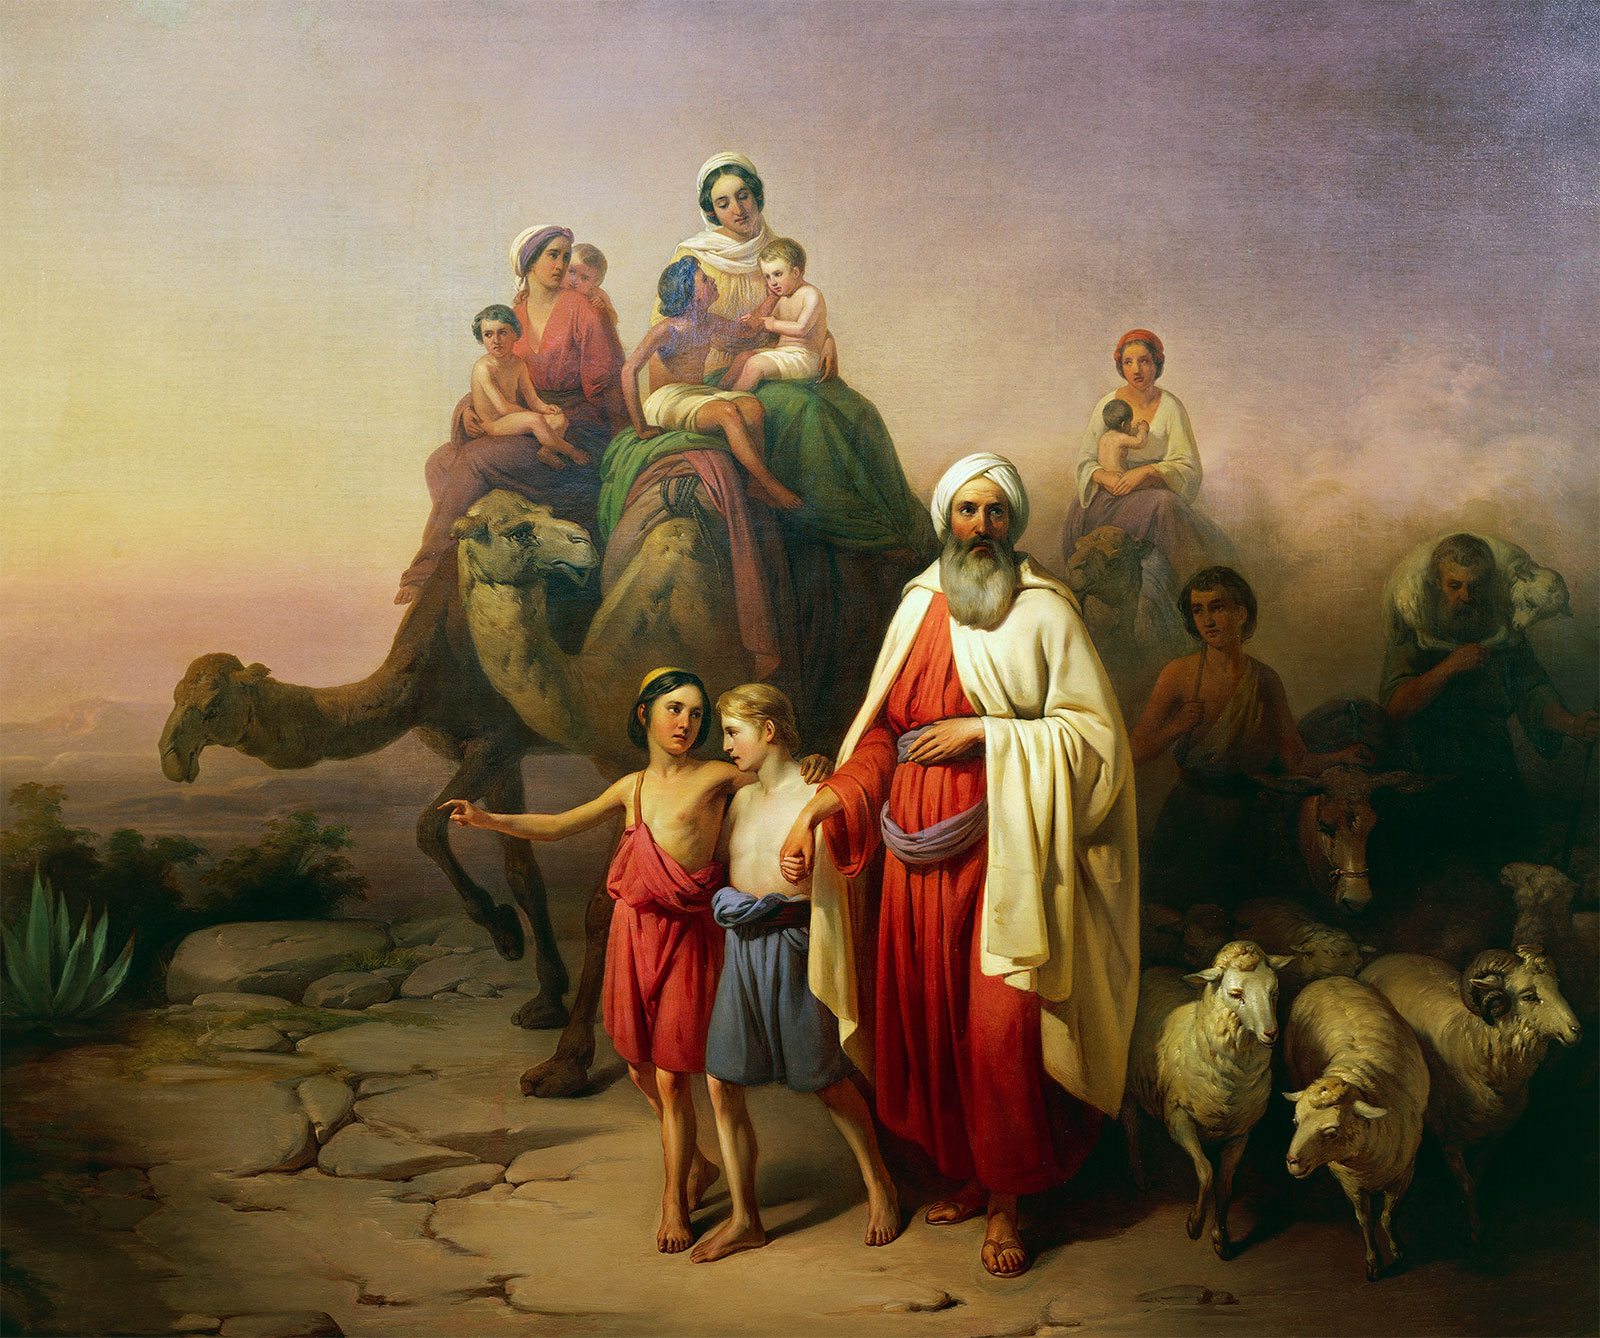 The story of Abraham is told in Genesis, the first book of the Bible.